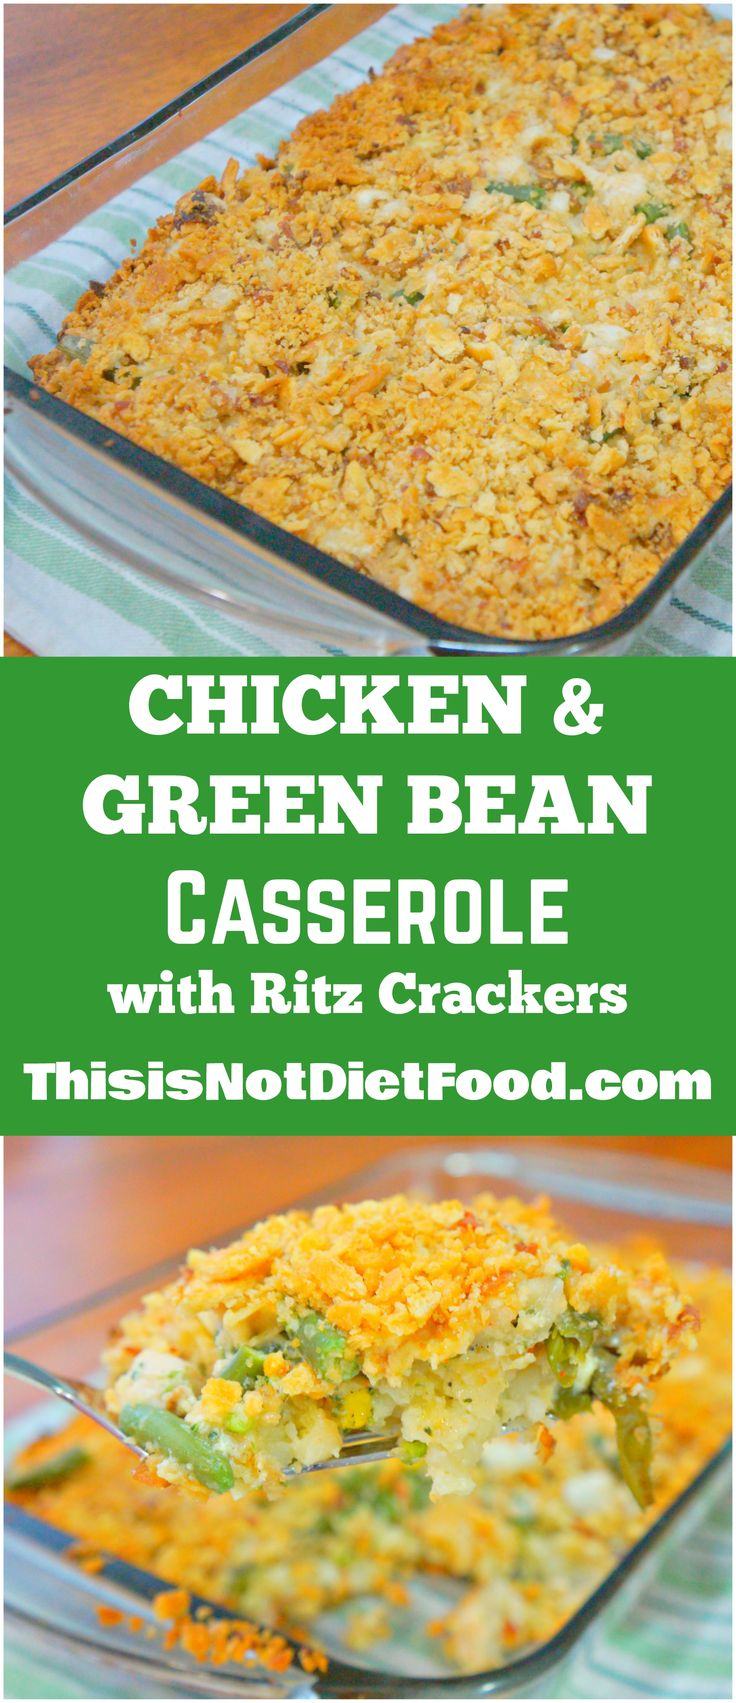 Chicken & Green Bean Casserole topped with Ritz Crackers.